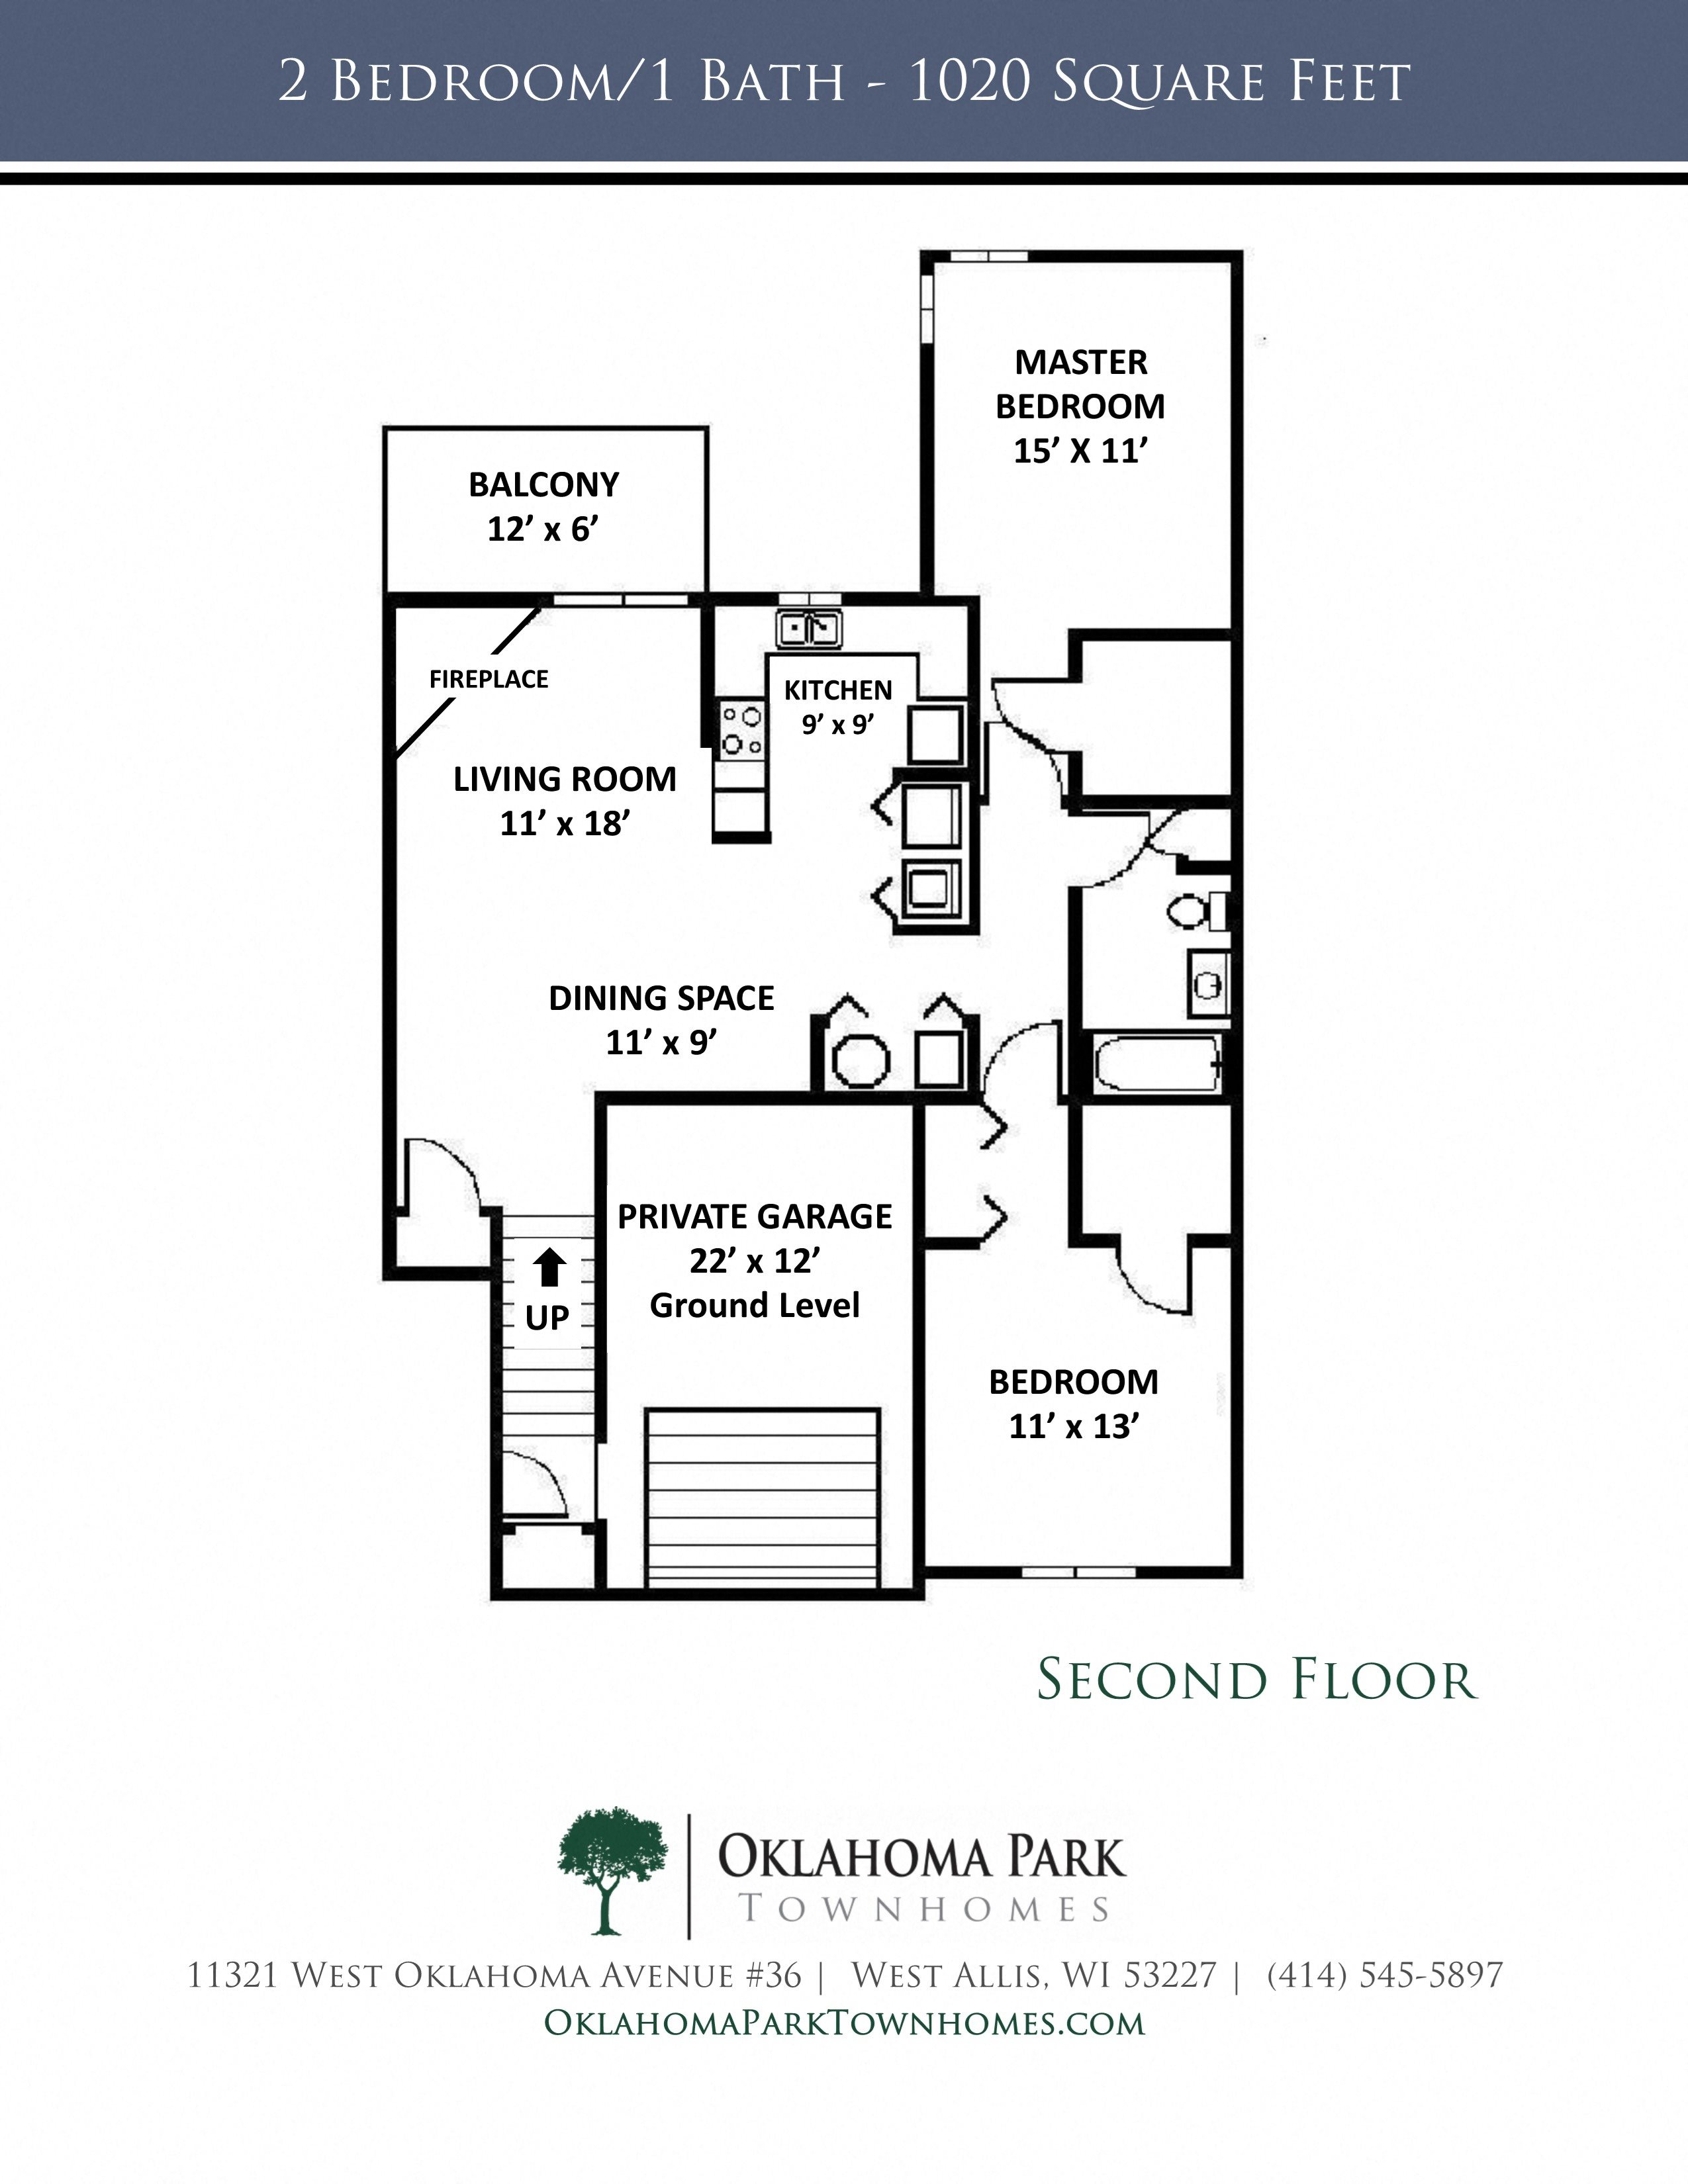 2 Bedroom, 1 Bath Upper Townhome with Fireplace Floorplan at Oklahoma Park Townhomes